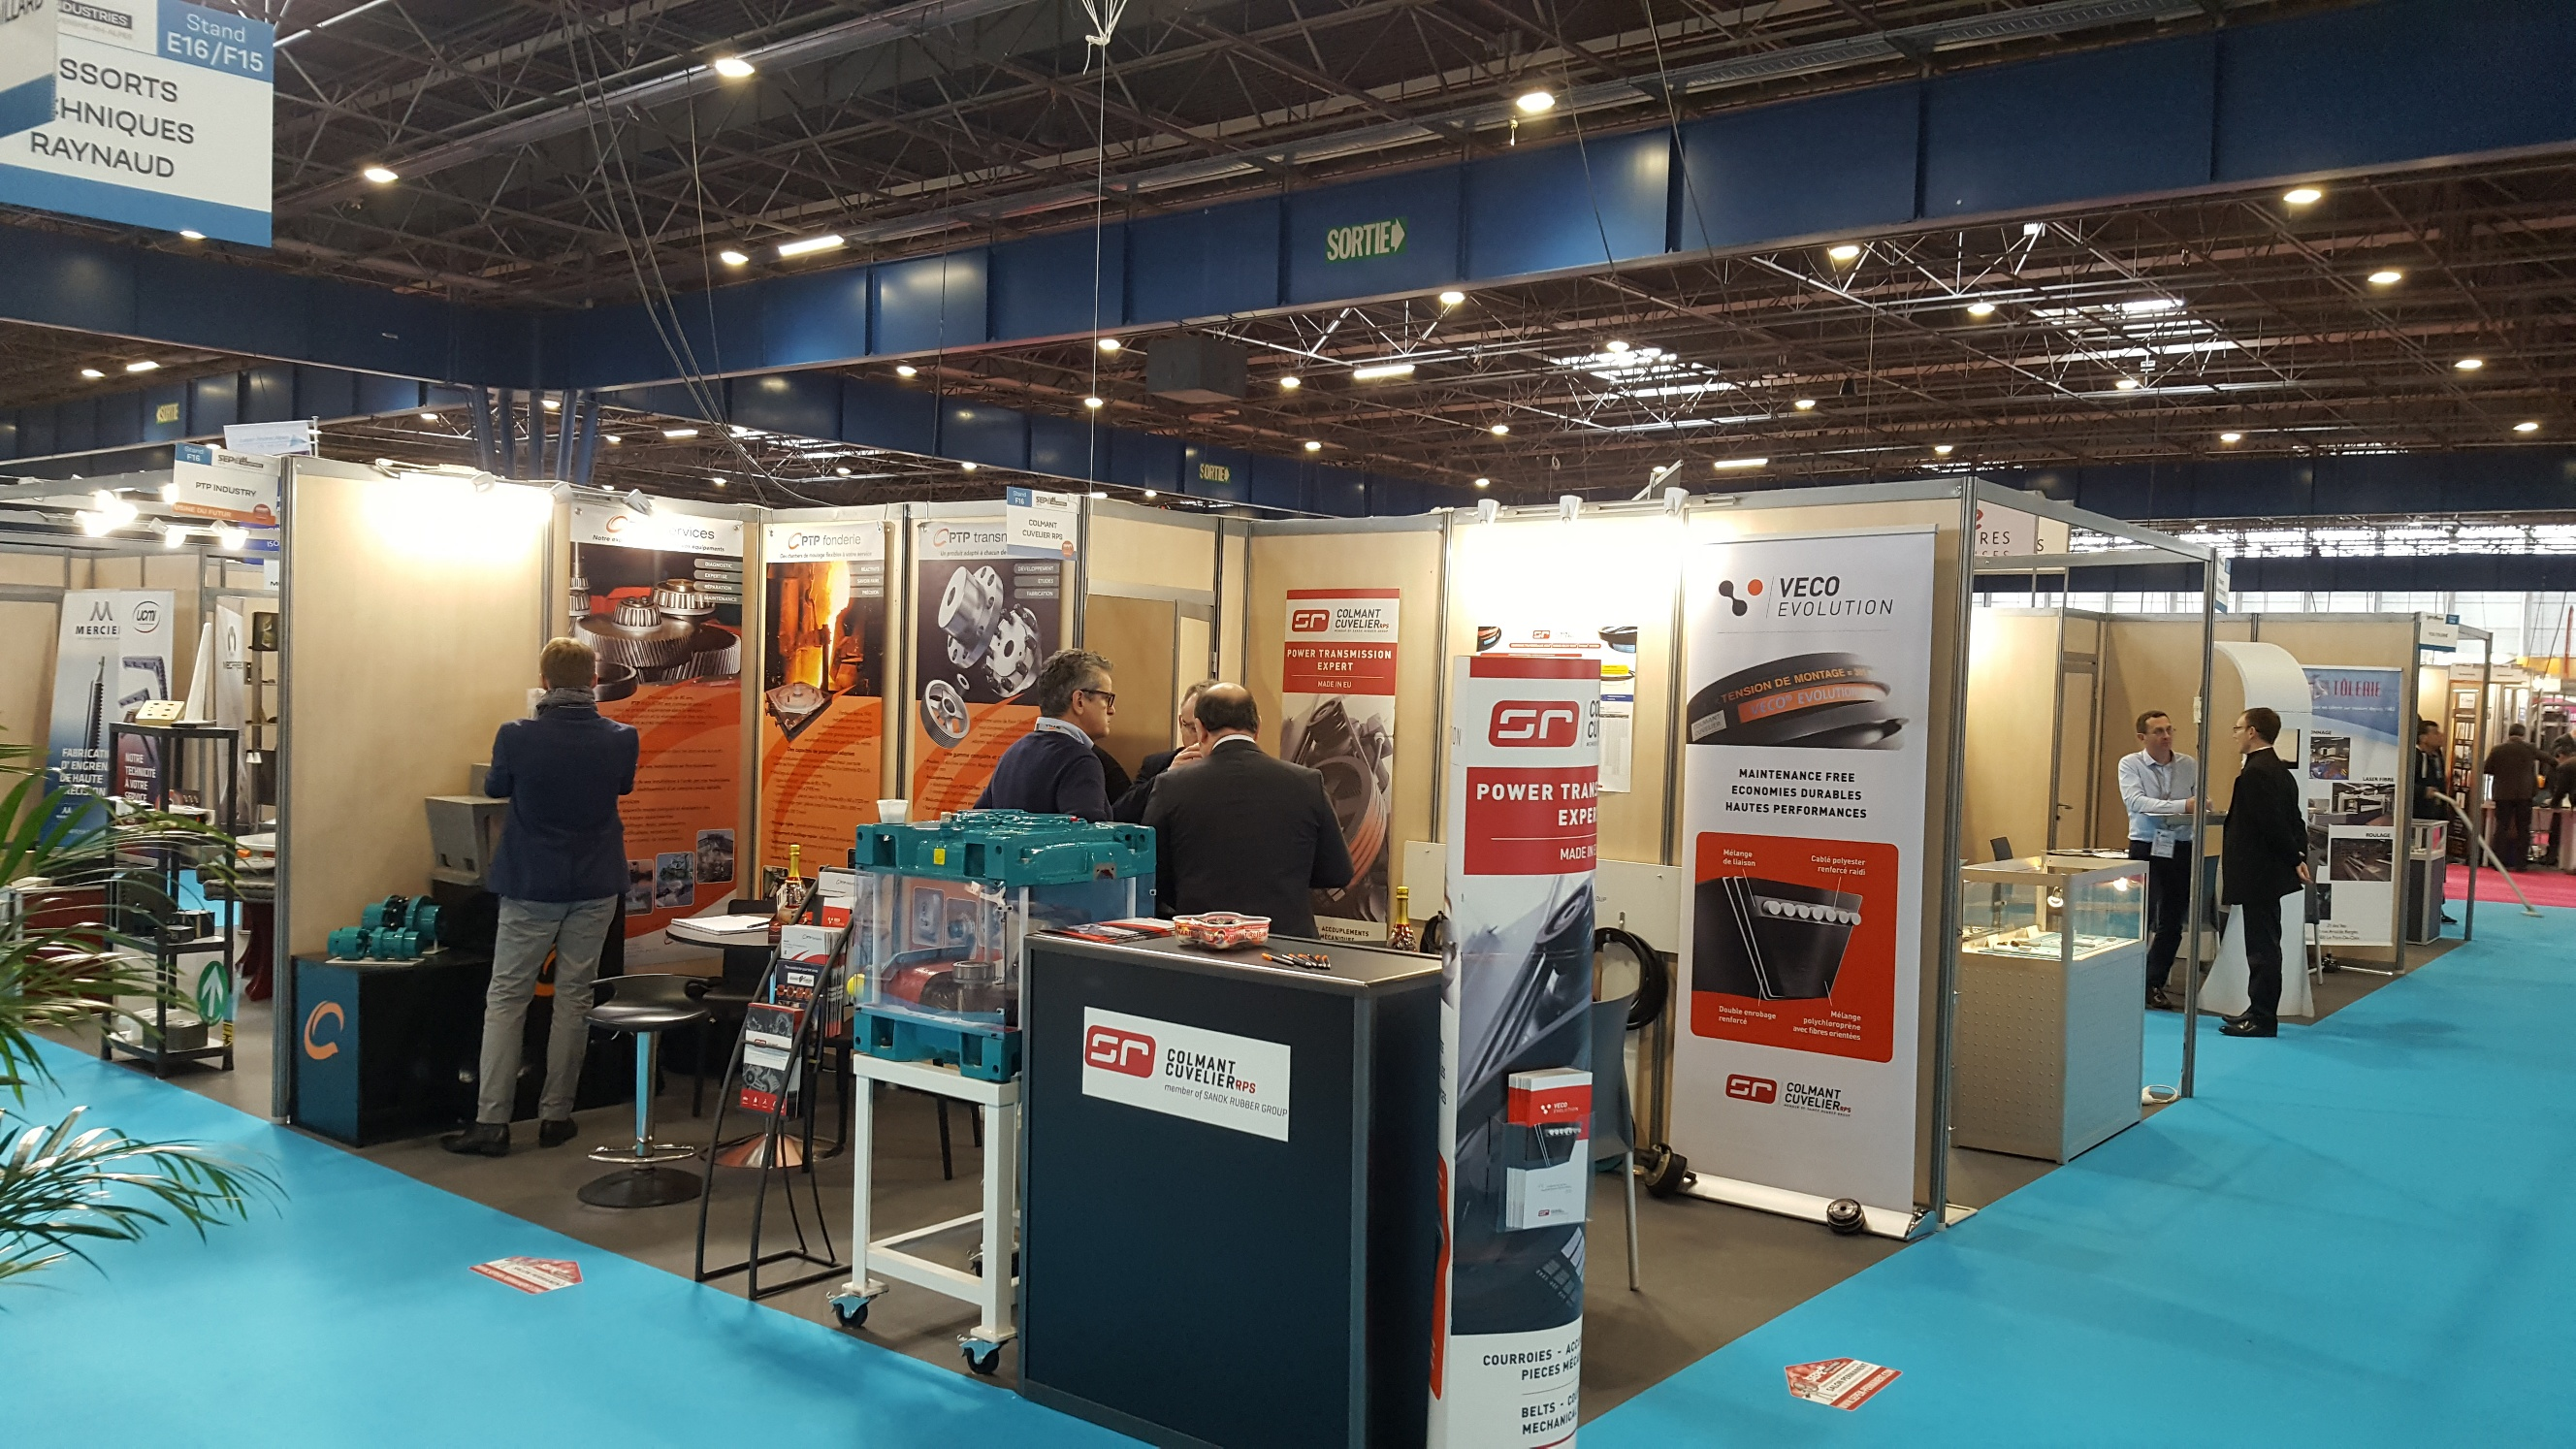 PTP INDUSTRY is at the SEPEM Trade Fair in Grenoble with our Partner Colmant Cuvelier RPS